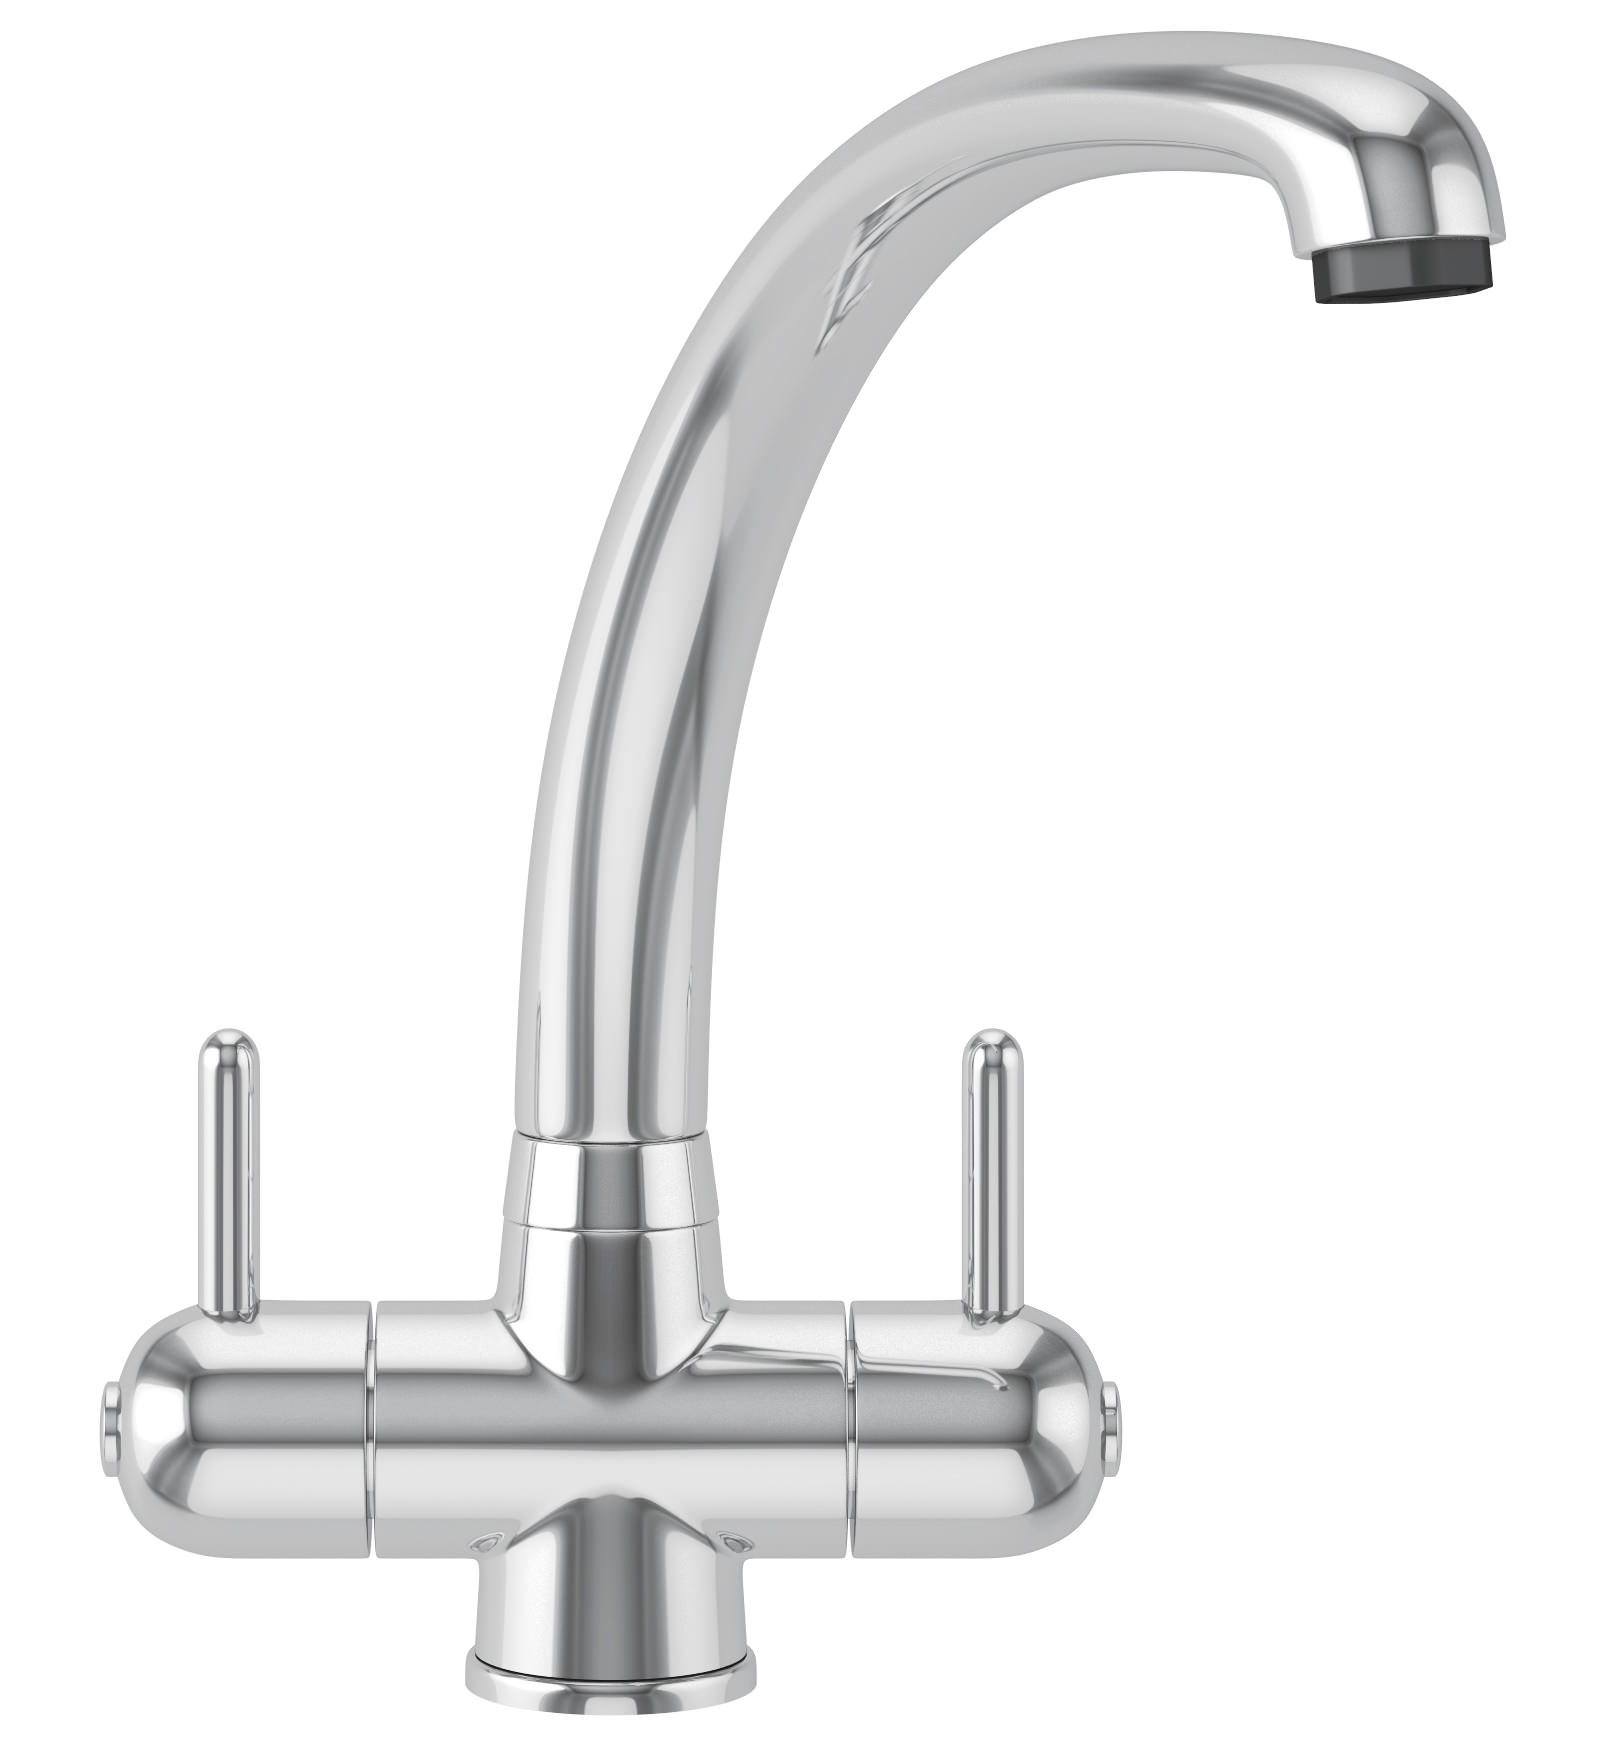 Franke Erica Propack Eux 651 Stainless Steel Kitchen Sink And Tap 1010019158 Bom